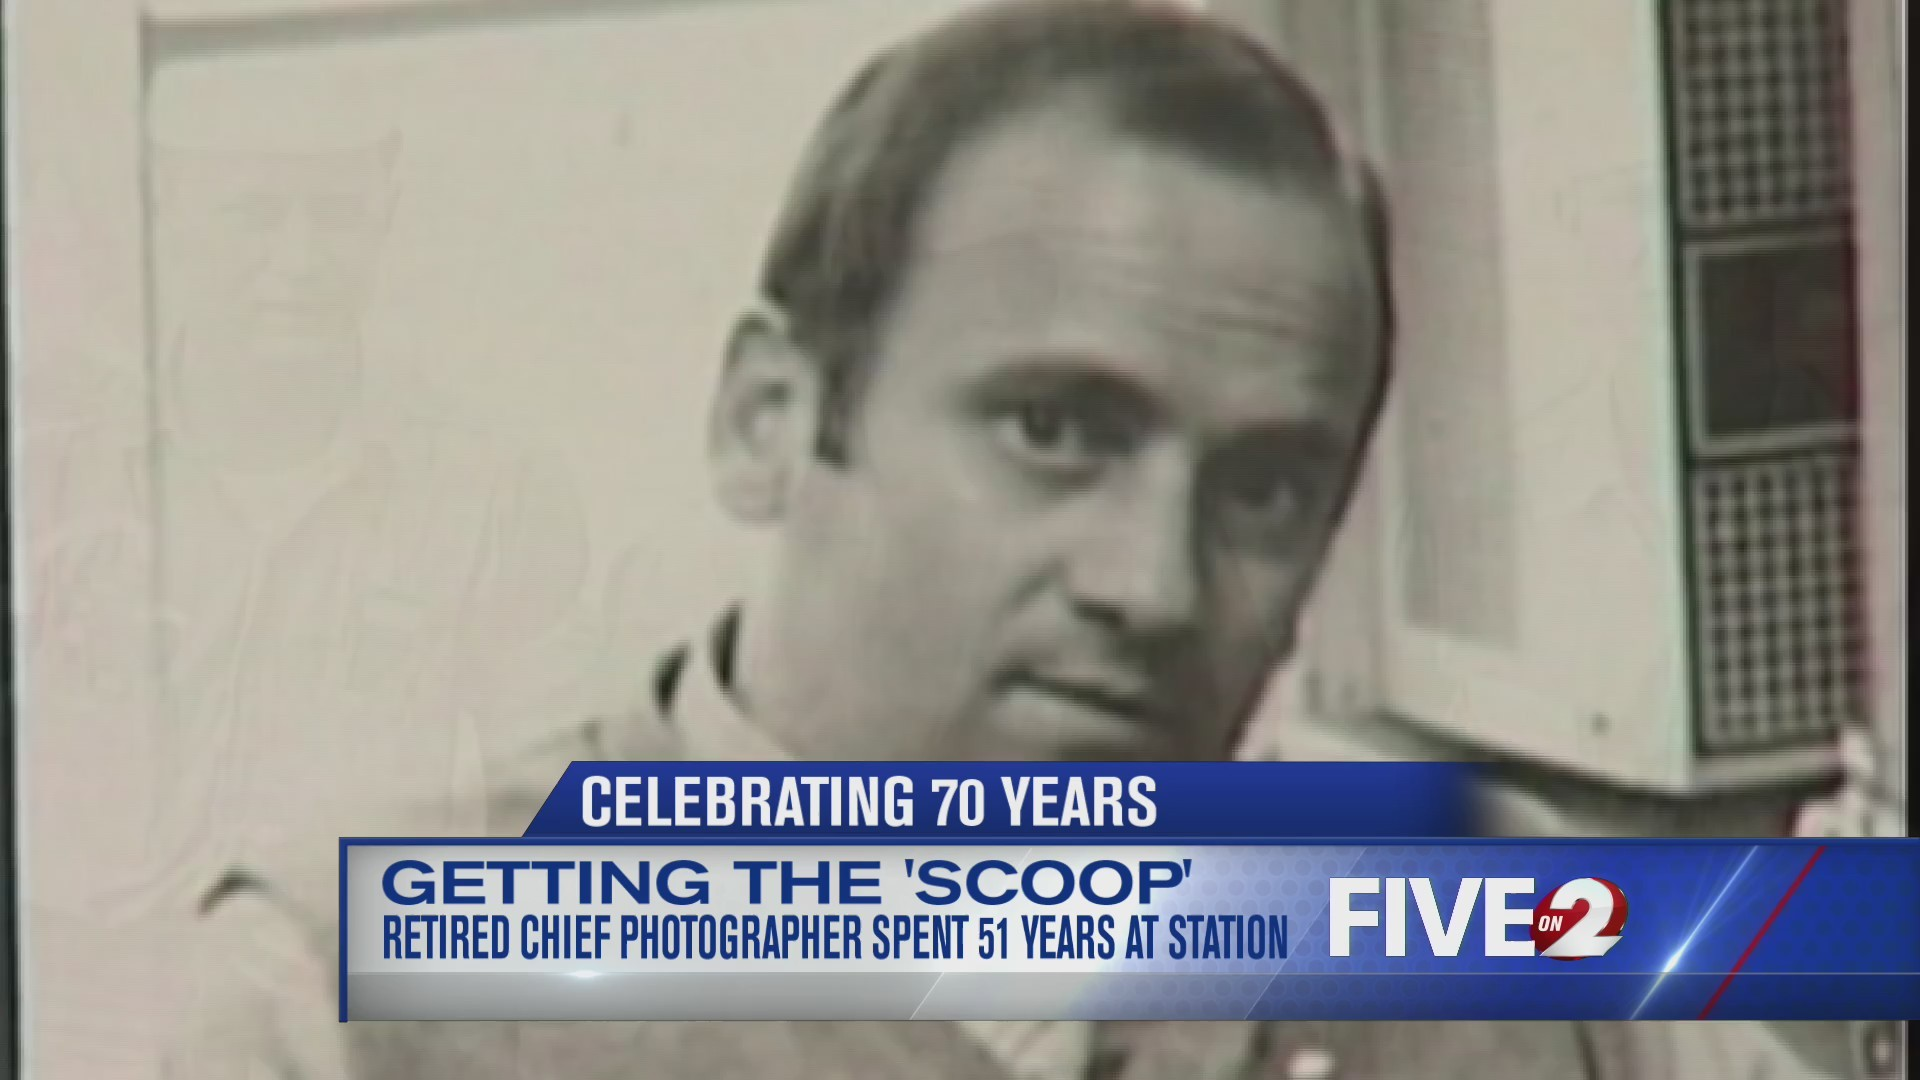 Getting the 'Scoop:' Retired Chief Photographer spent 51 years at WDTN